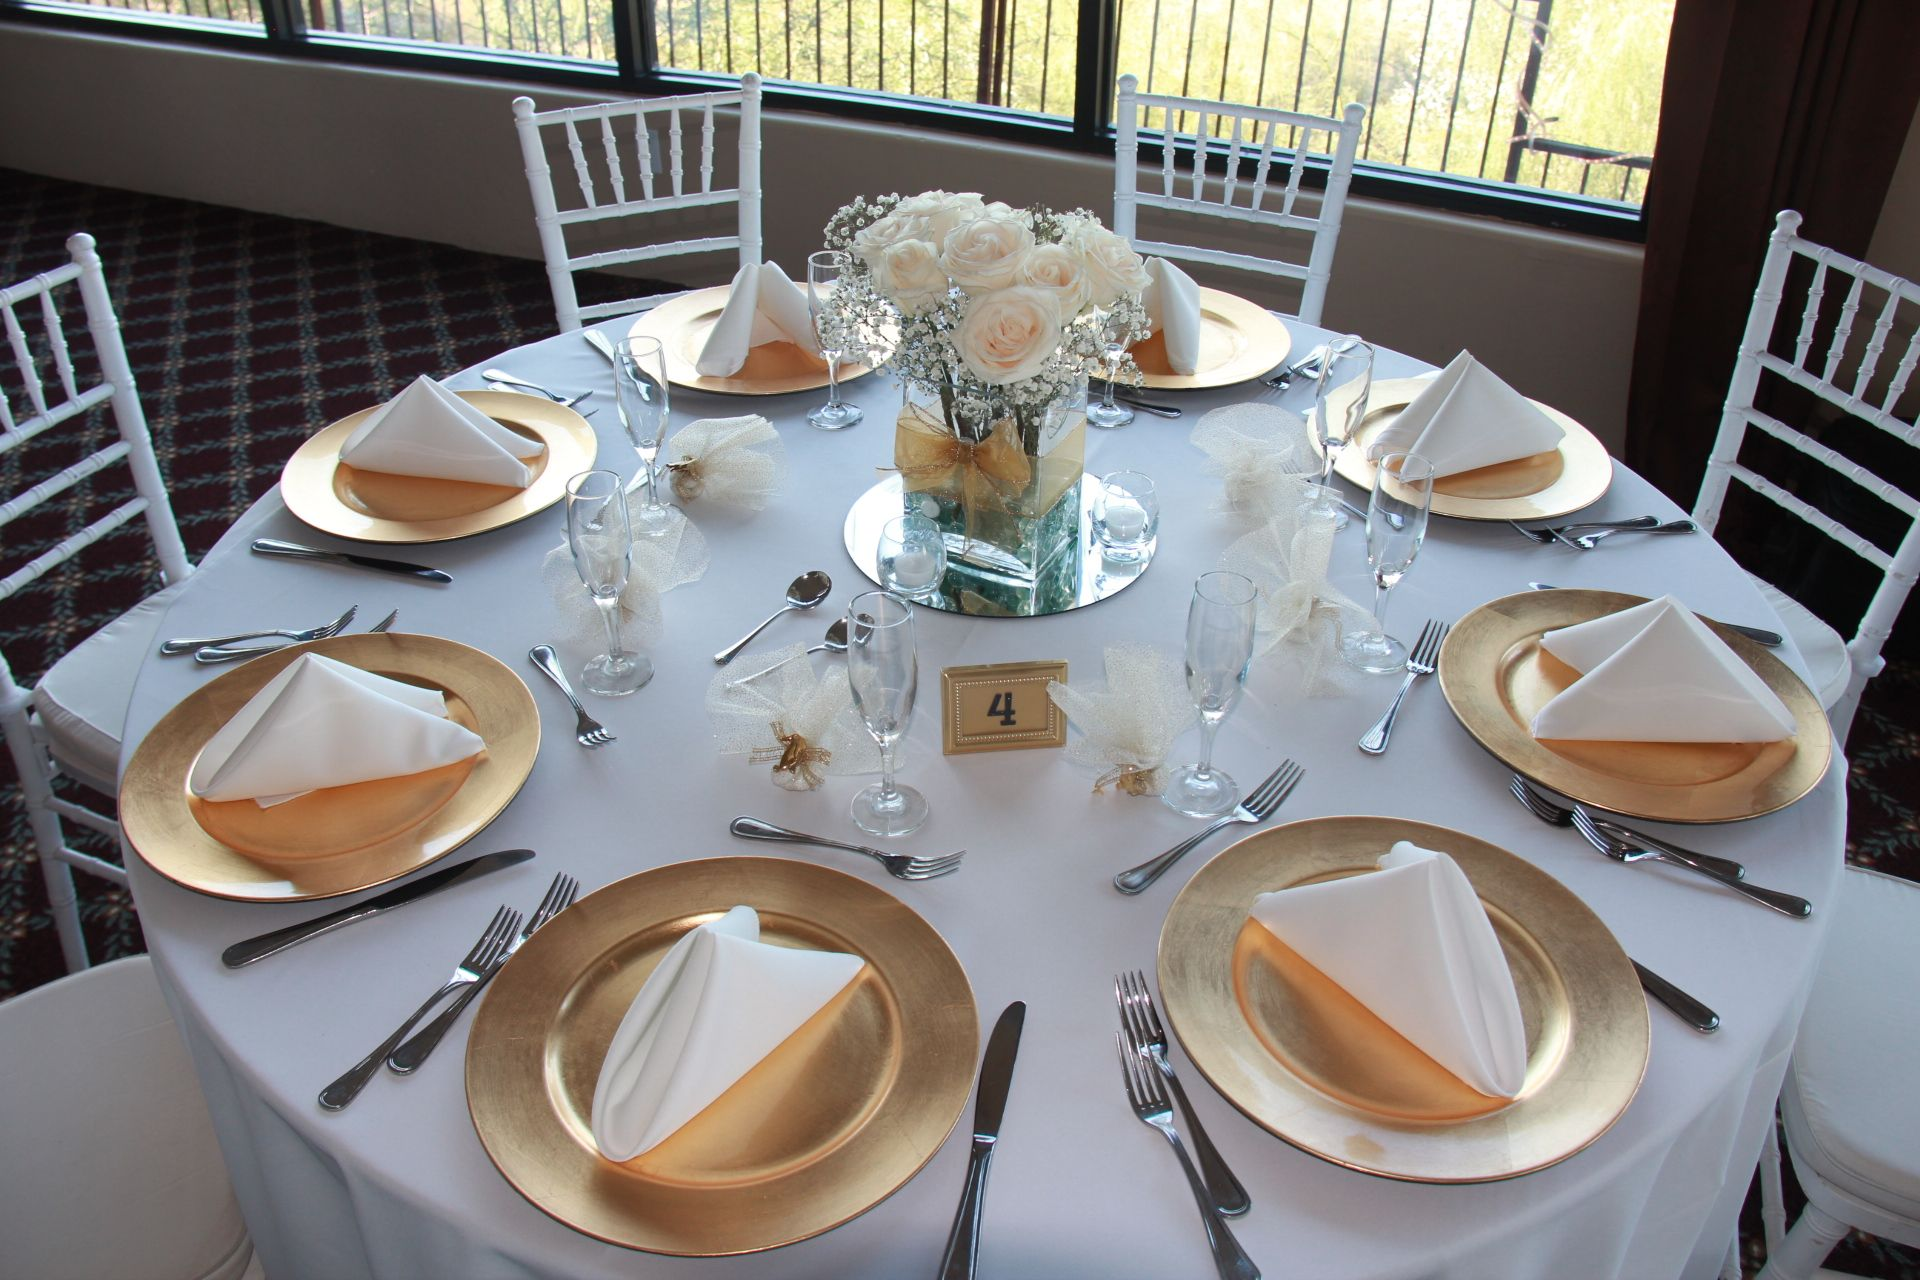 Gold charger plates with white table linen and napkins